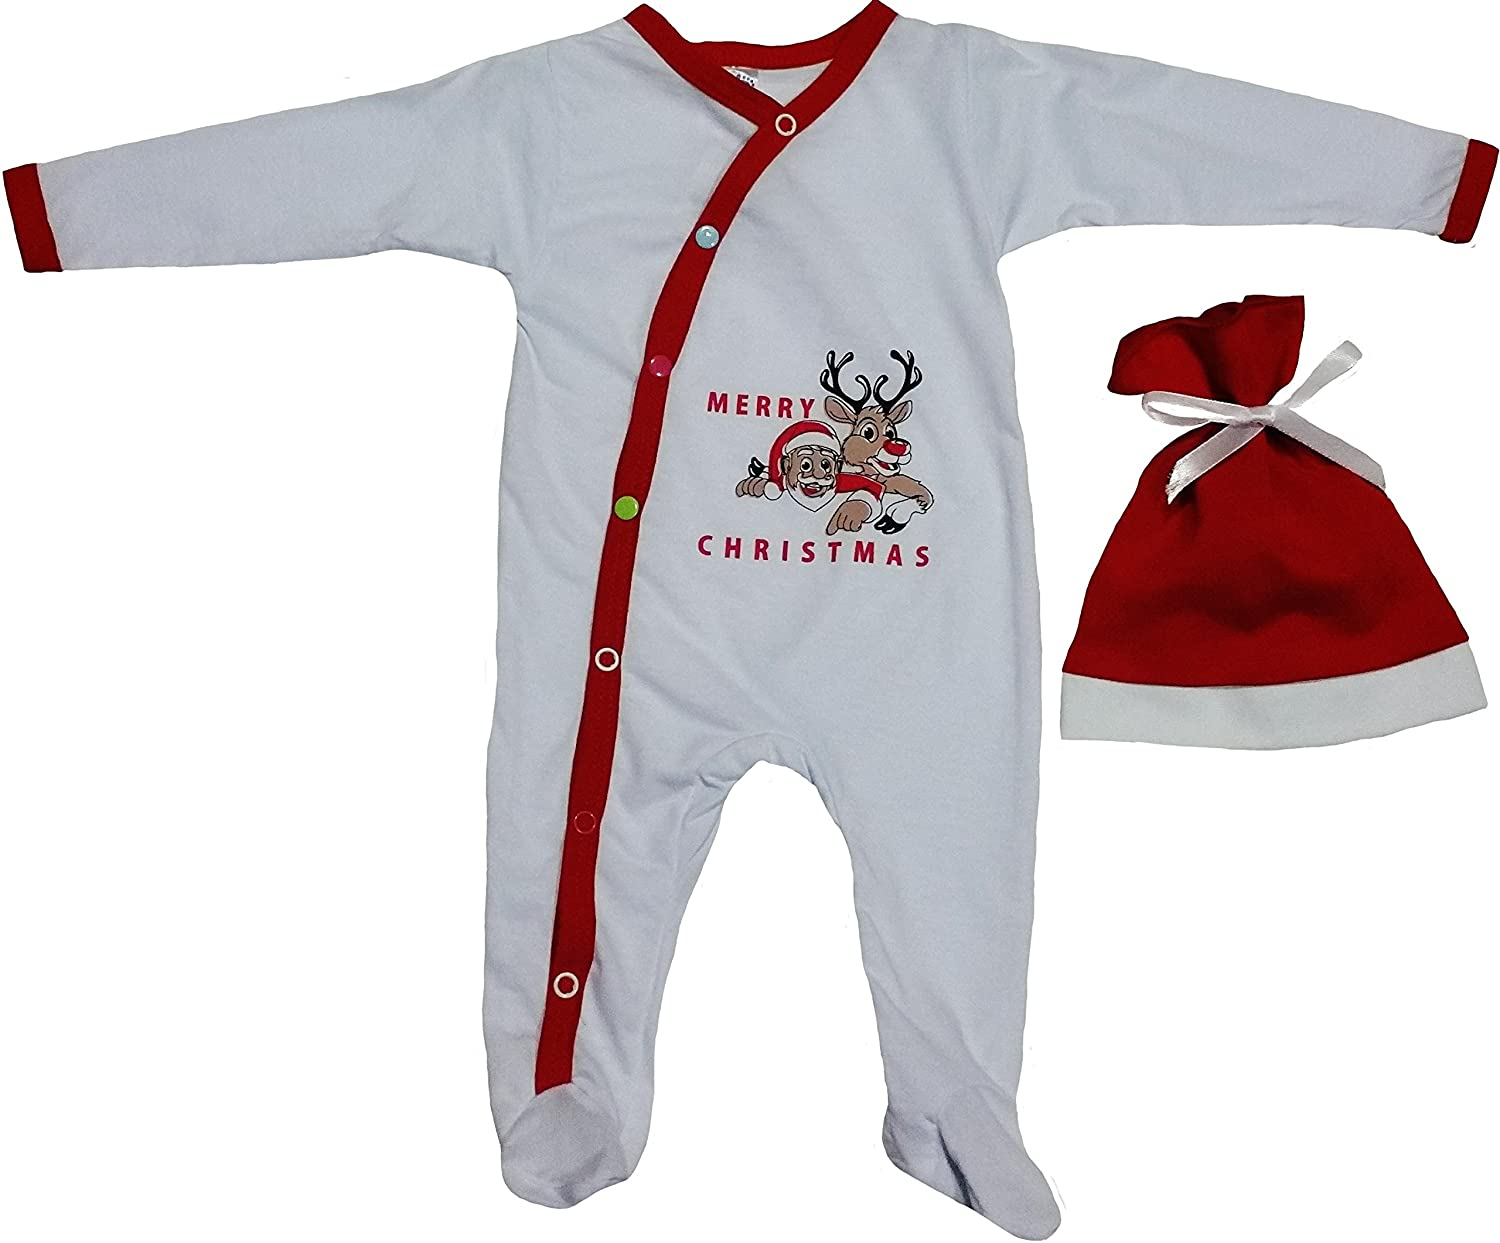 Amazon.com: Baby First Christmas Outfit For Infants with Reindeer ...